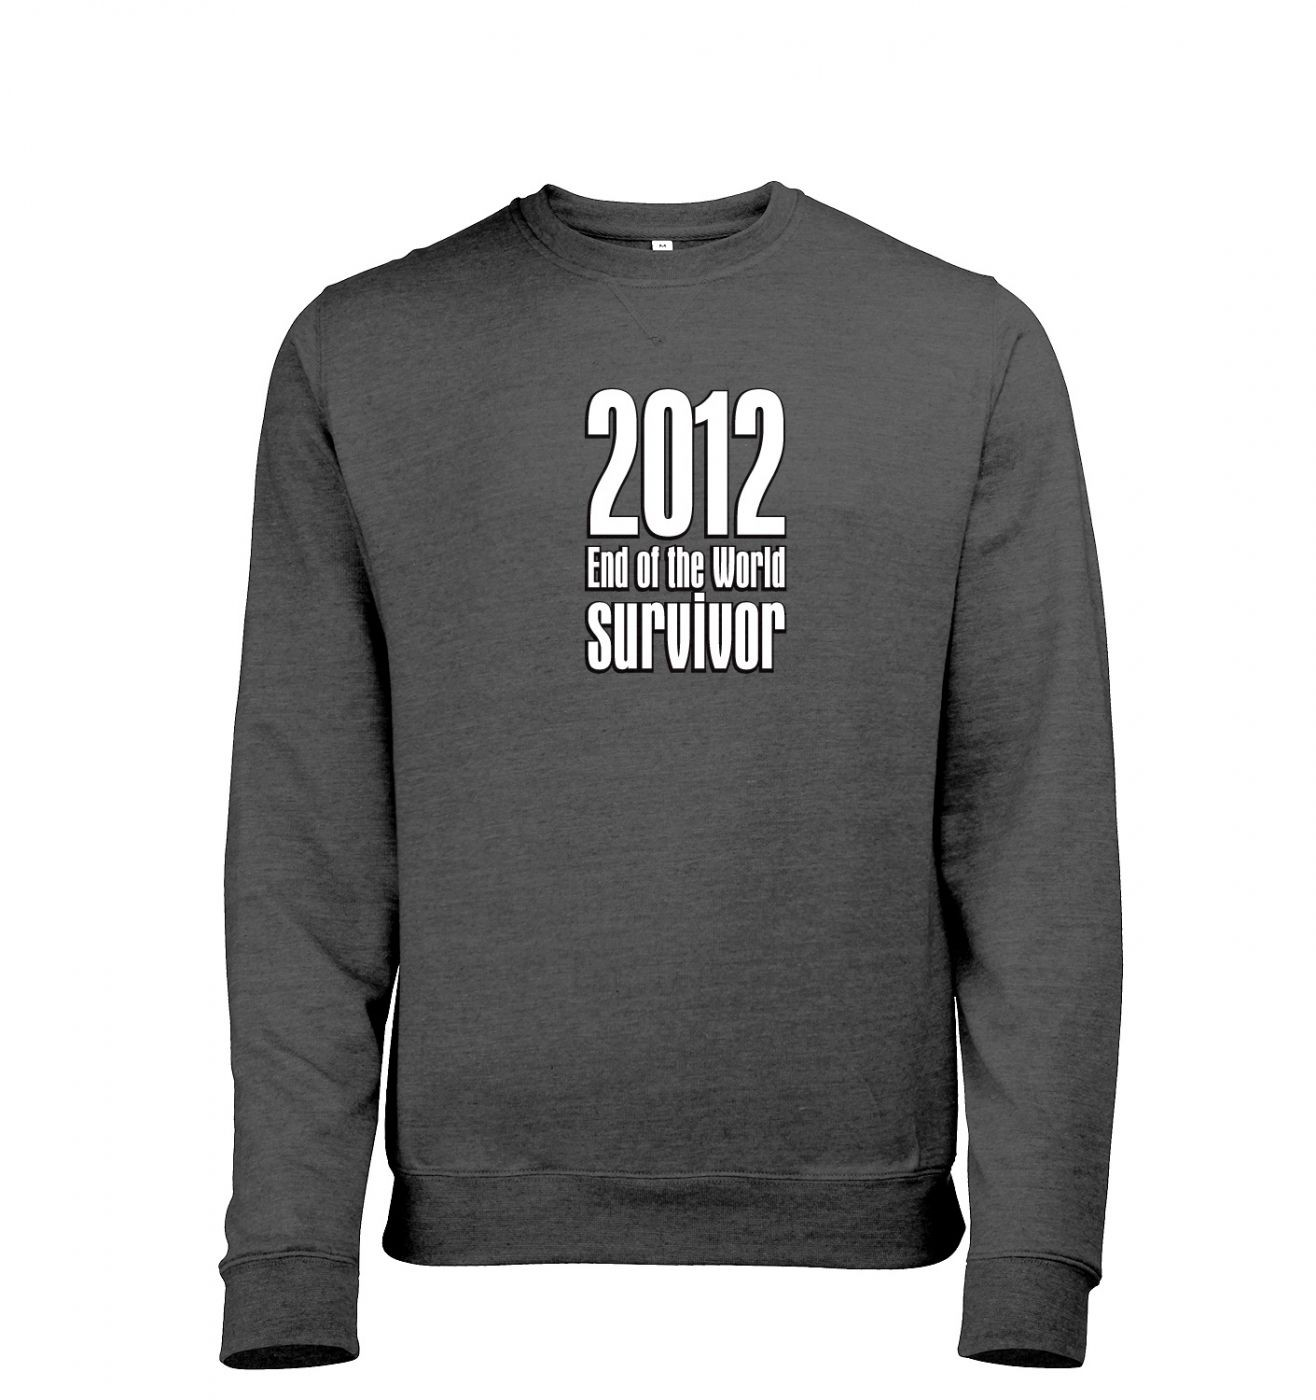 2012 End of The World Survivor  t-shirt